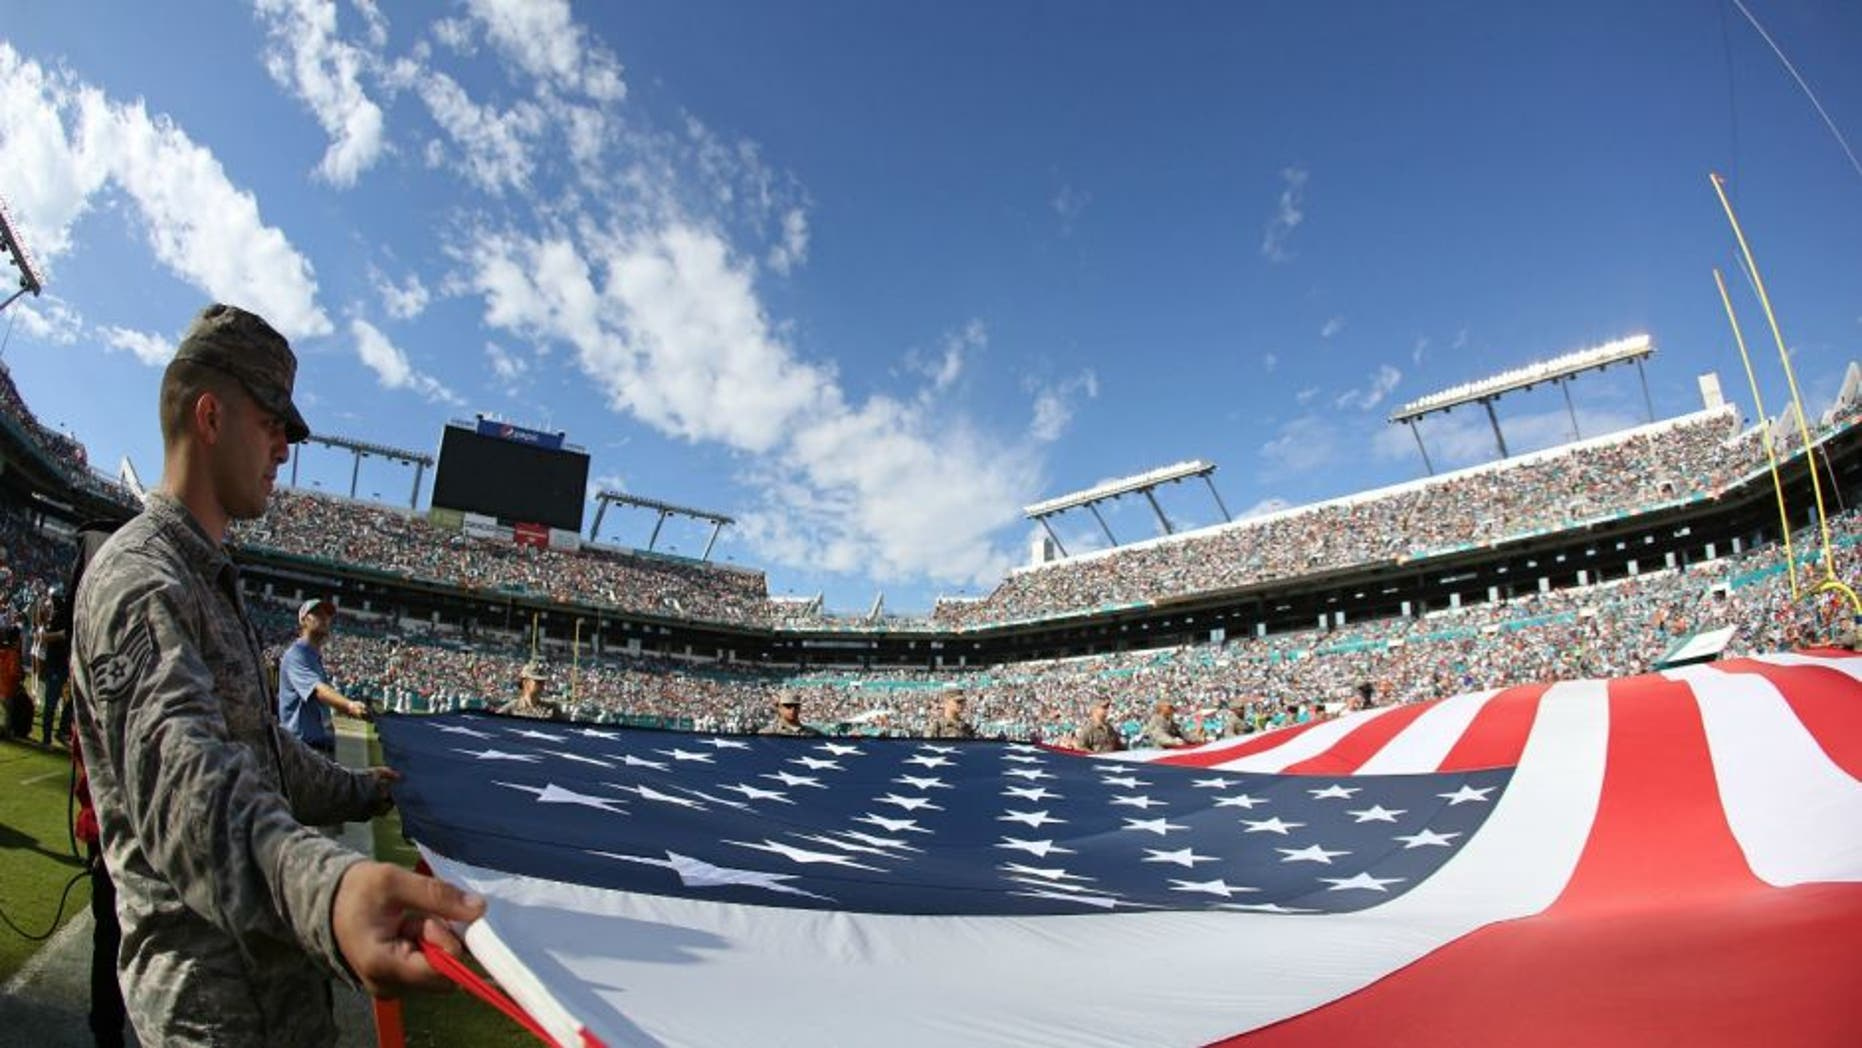 of the game at Sun Life Stadium on November 22, 2015 in Miami Gardens, Florida.,MIAMI GARDENS, FL - NOVEMBER 22: Memebers of the US Armed Forces hold an American Flag on the field for the singing of God Bless America during the second quarter of the game between the Miami Dolphins and the Dallas Cowboys at Sun Life Stadium on November 22, 2015 in Miami Gardens, Florida. (Photo by Rob Foldy/Getty Images)